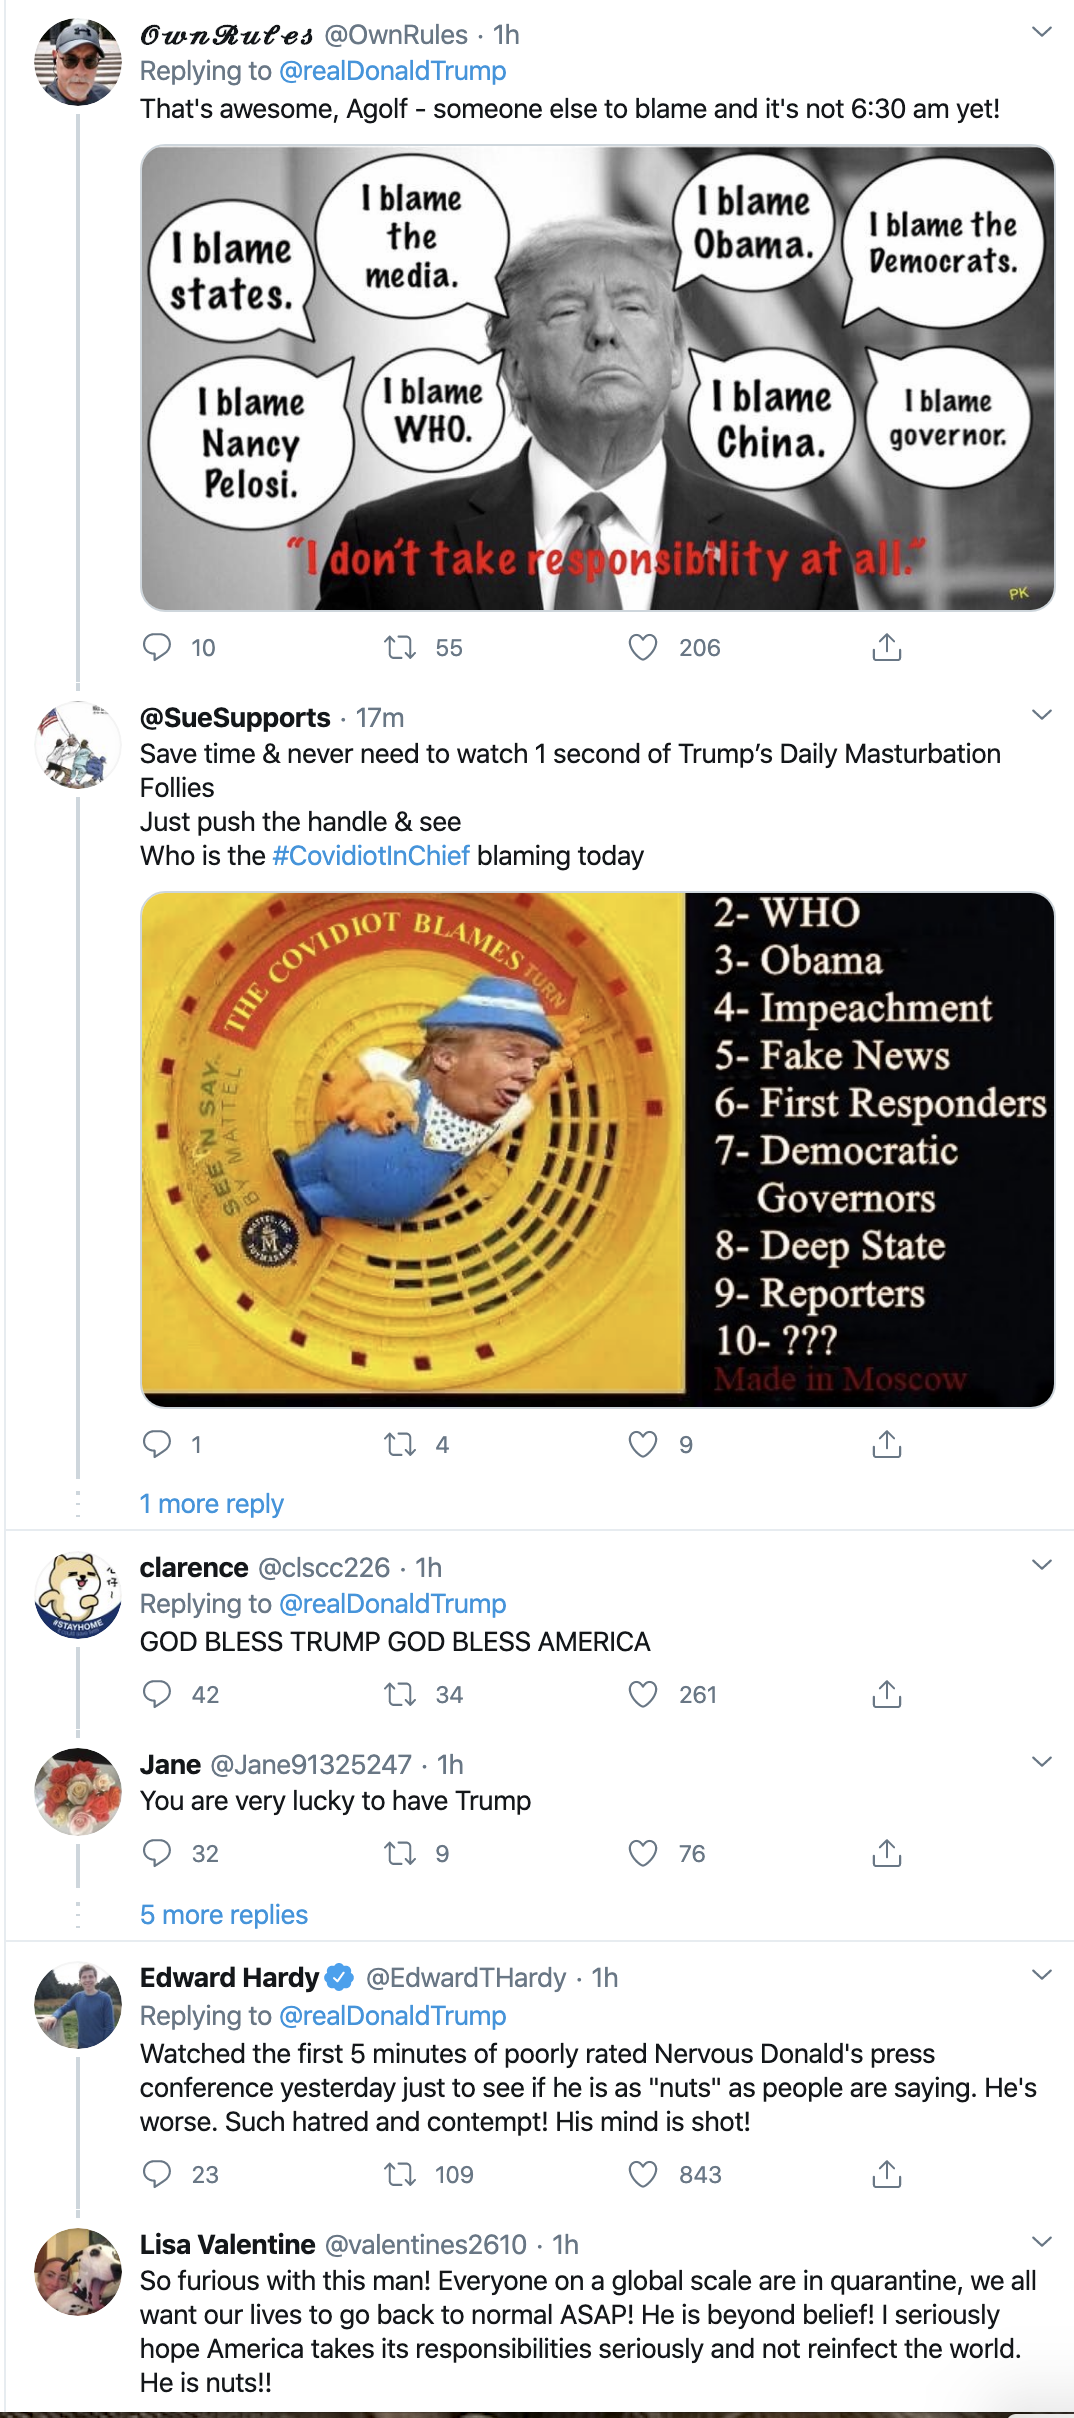 Screen-Shot-2020-04-21-at-7.08.27-AM Trump Launches Morning War Of Words On Twitter Election 2020 Featured Healthcare Politics Top Stories